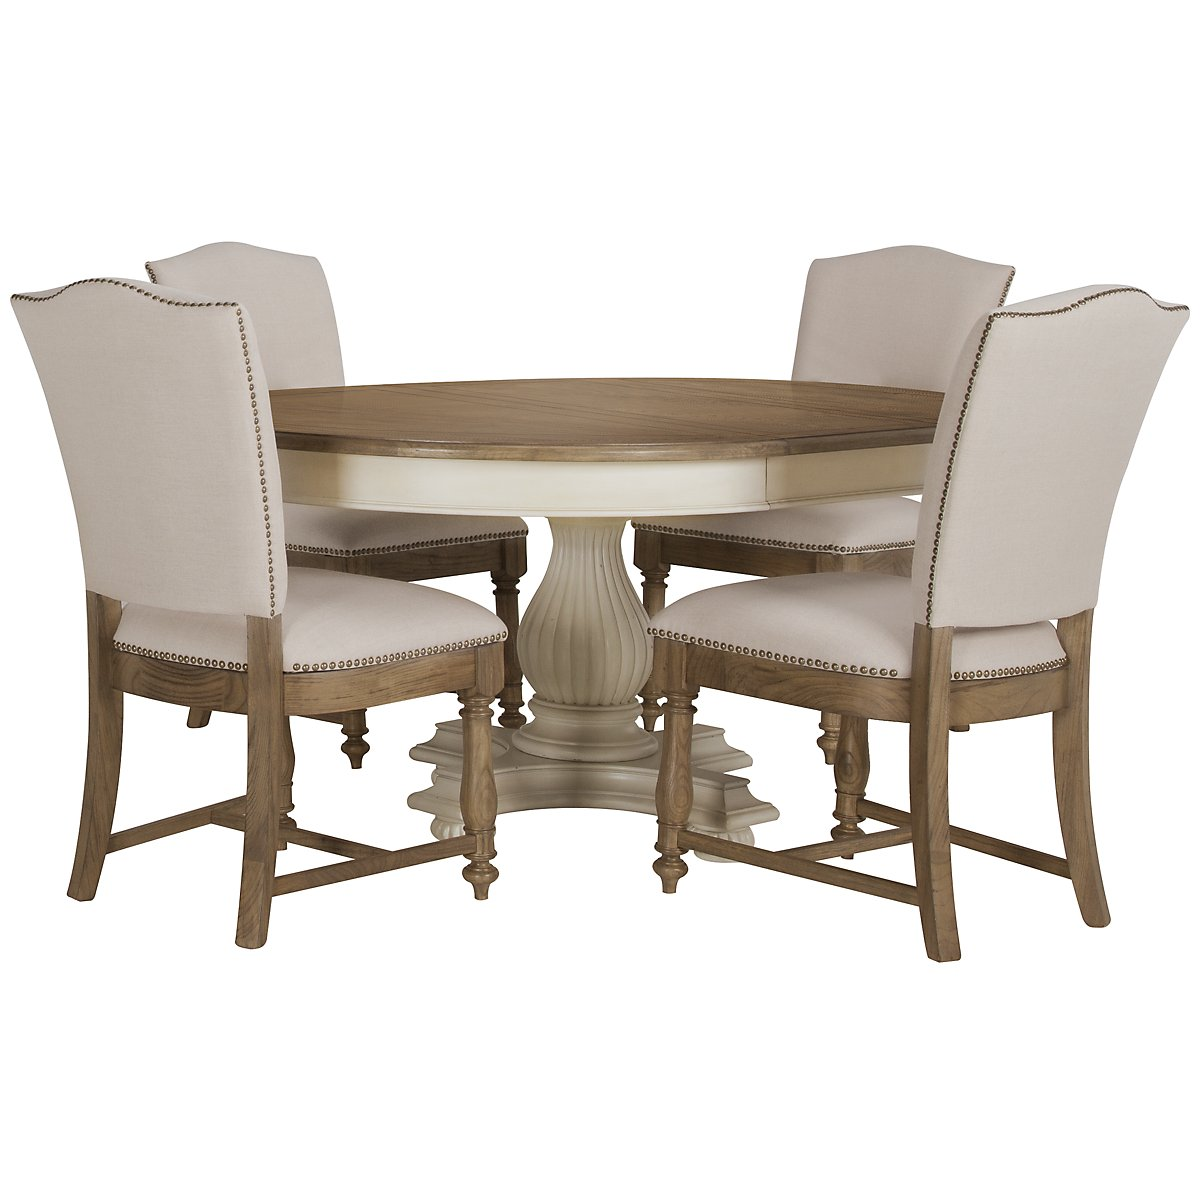 City furniture coventry two tone round table 4 for Round dining table for 4